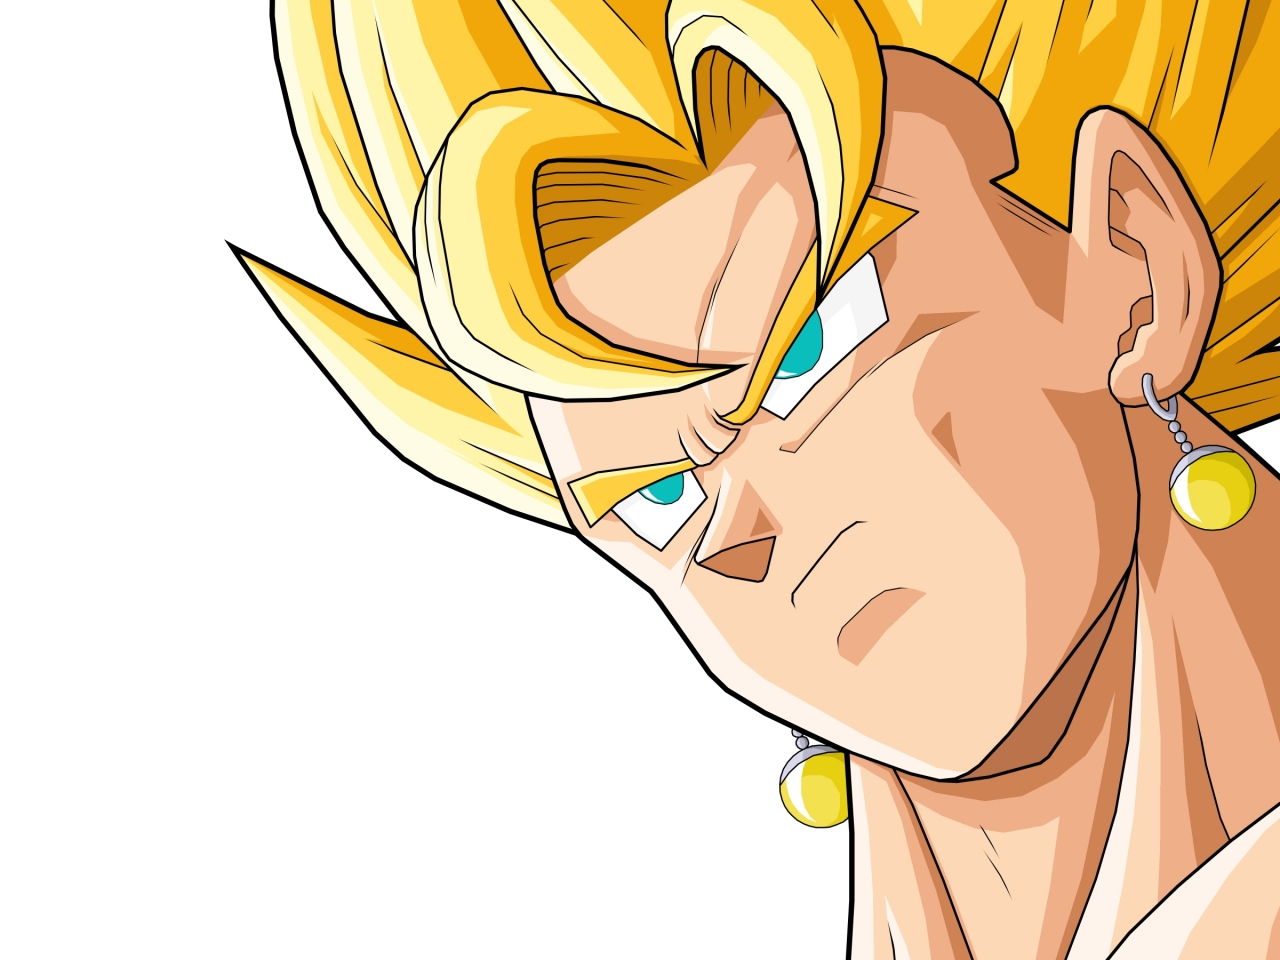 Vegeto de Dragon Ball Z - 1280x960